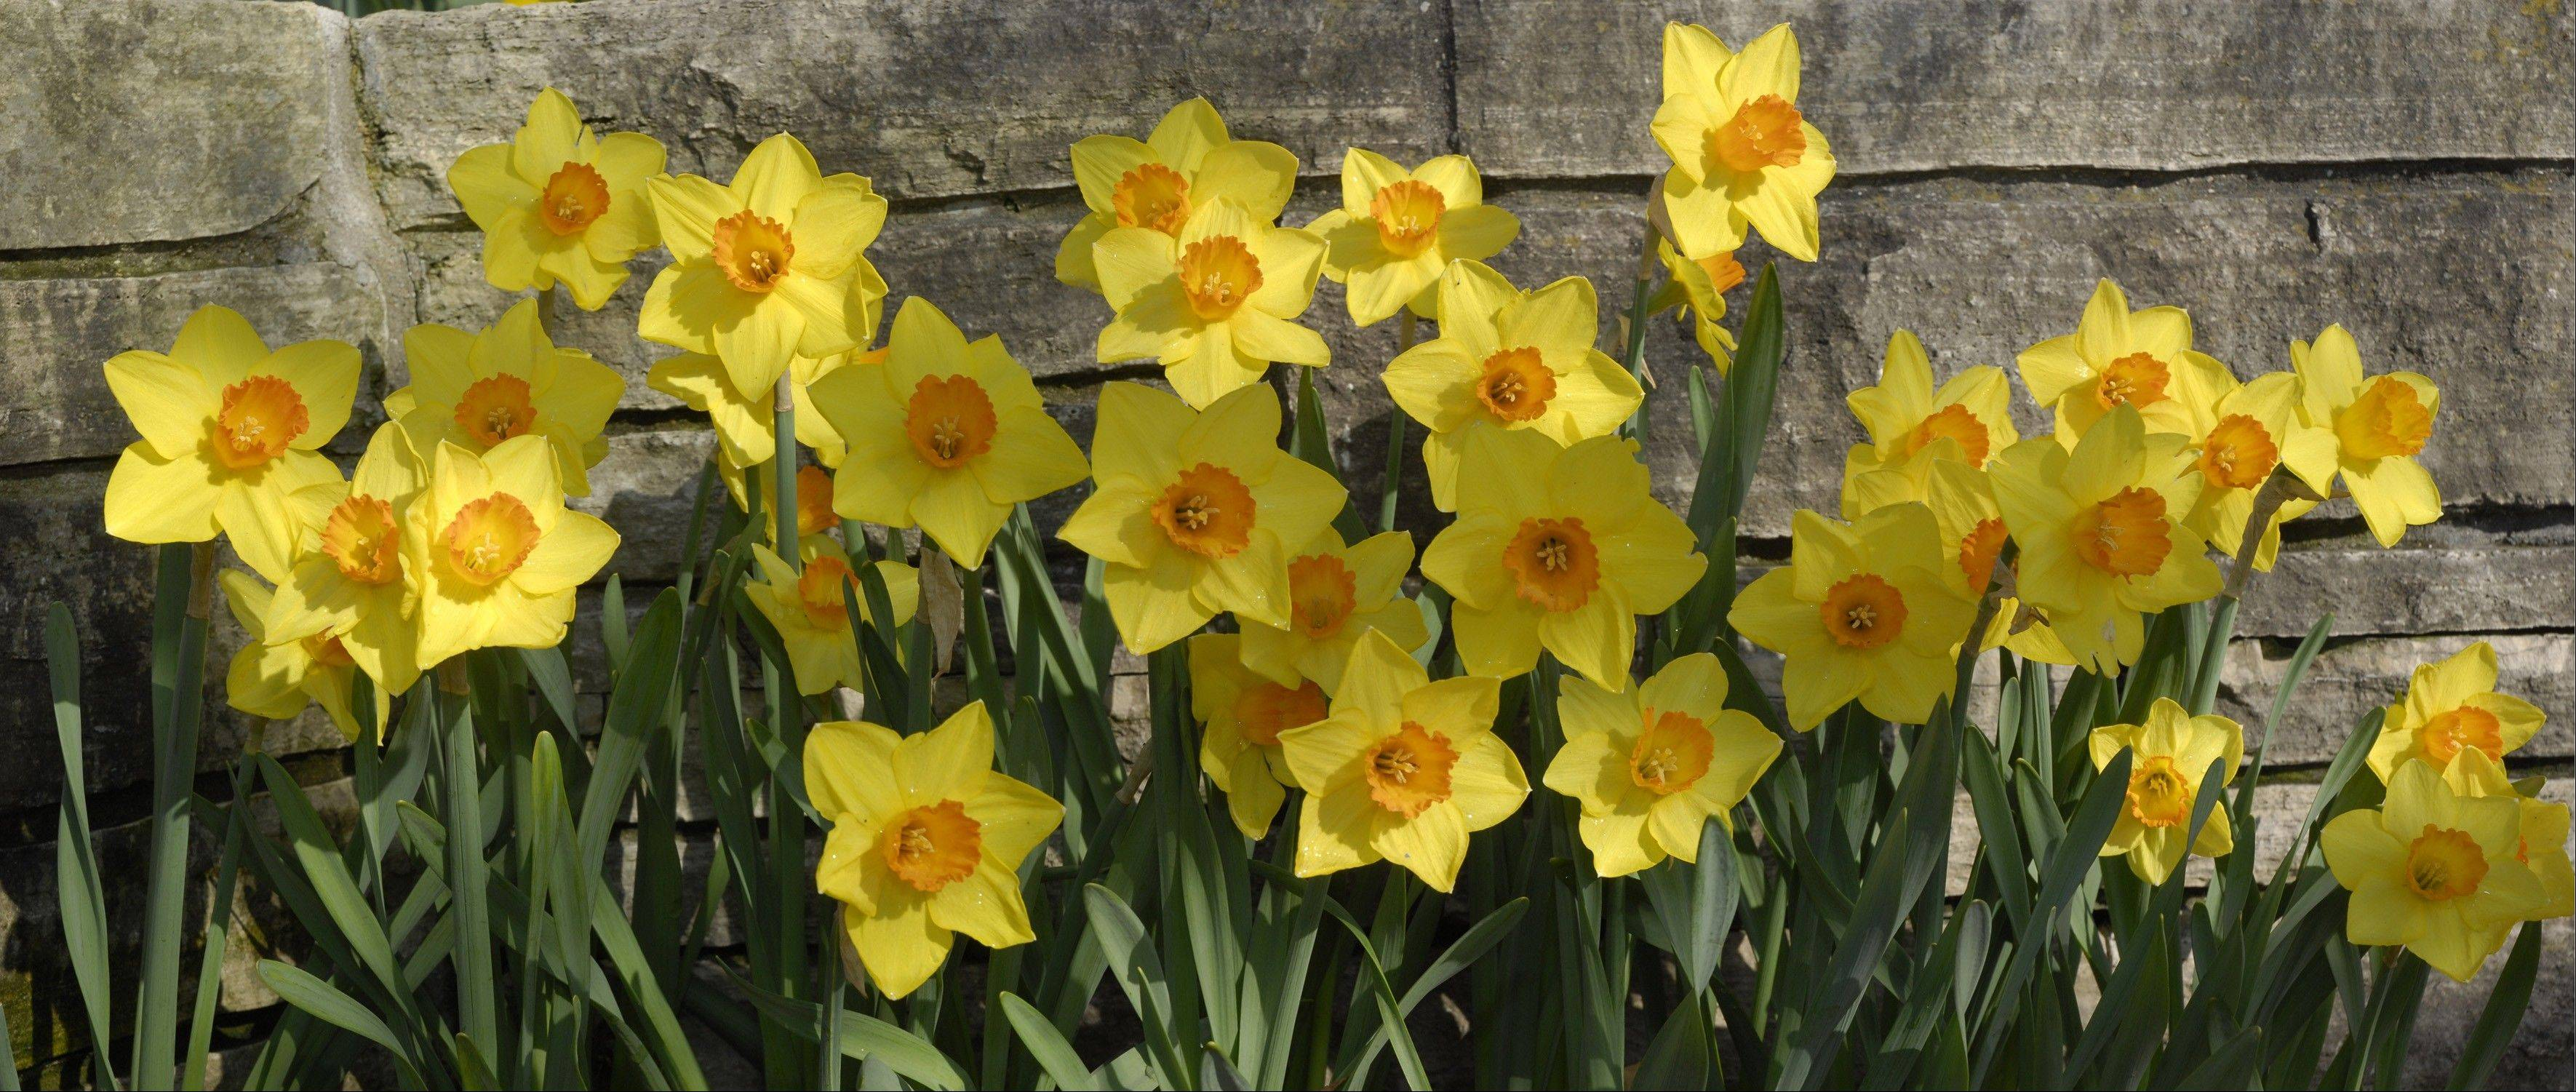 Planting several daffodil varieties with a range of bloom times can yield three to five weeks of steady bloom.